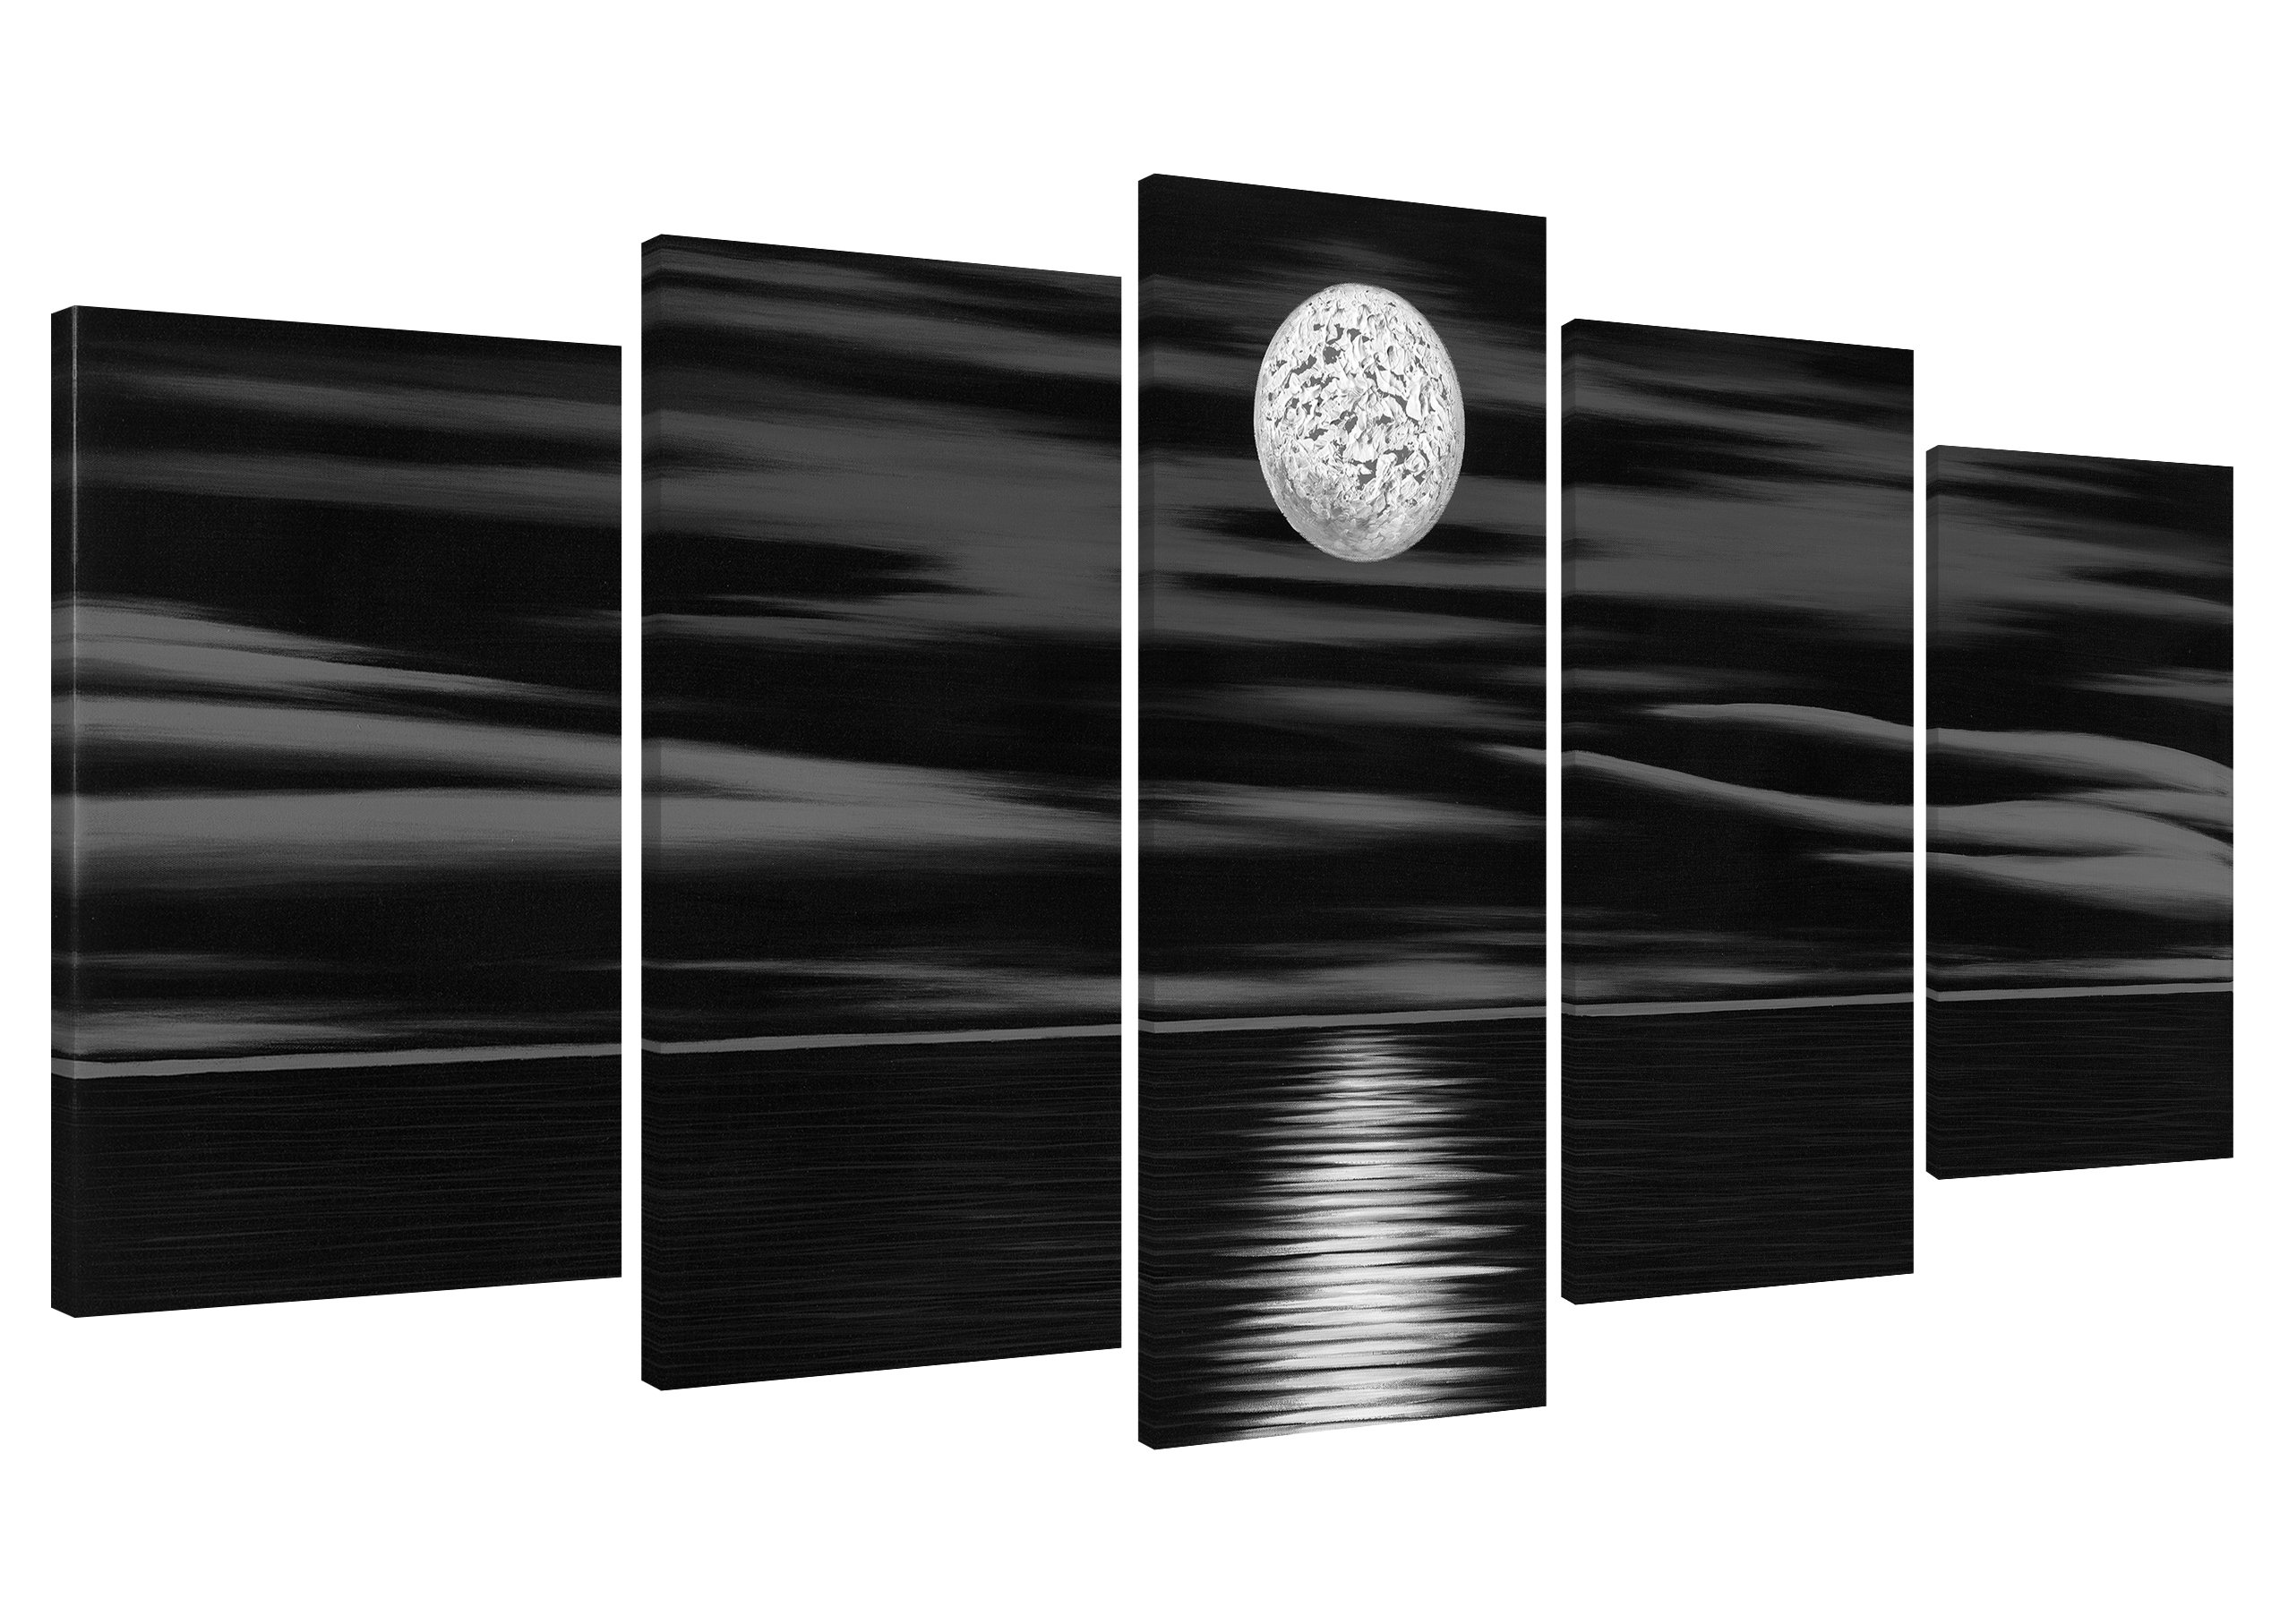 Wieco Art Sea White Full Moon in Night Oil Paintings on Canvas Wall Art Black and White Ocean Beach for Living Room Bedroom Kitchen Home Decorations 5 Piece Modern 100% Hand Painted Abstract Artwork